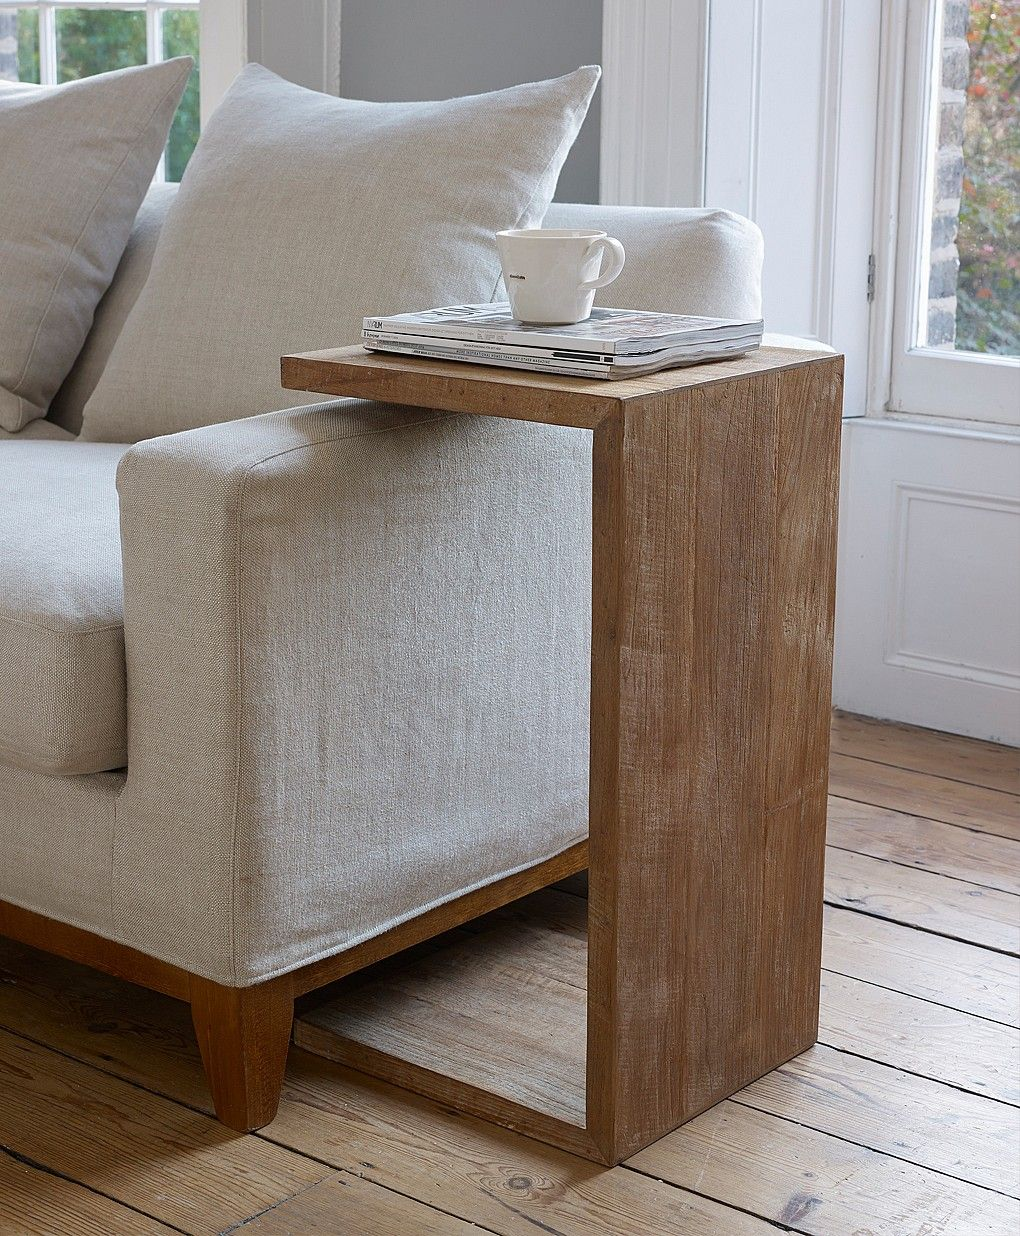 Sofa Side Table Target Kamer Decoratie Diy Tafel Thuis Diy